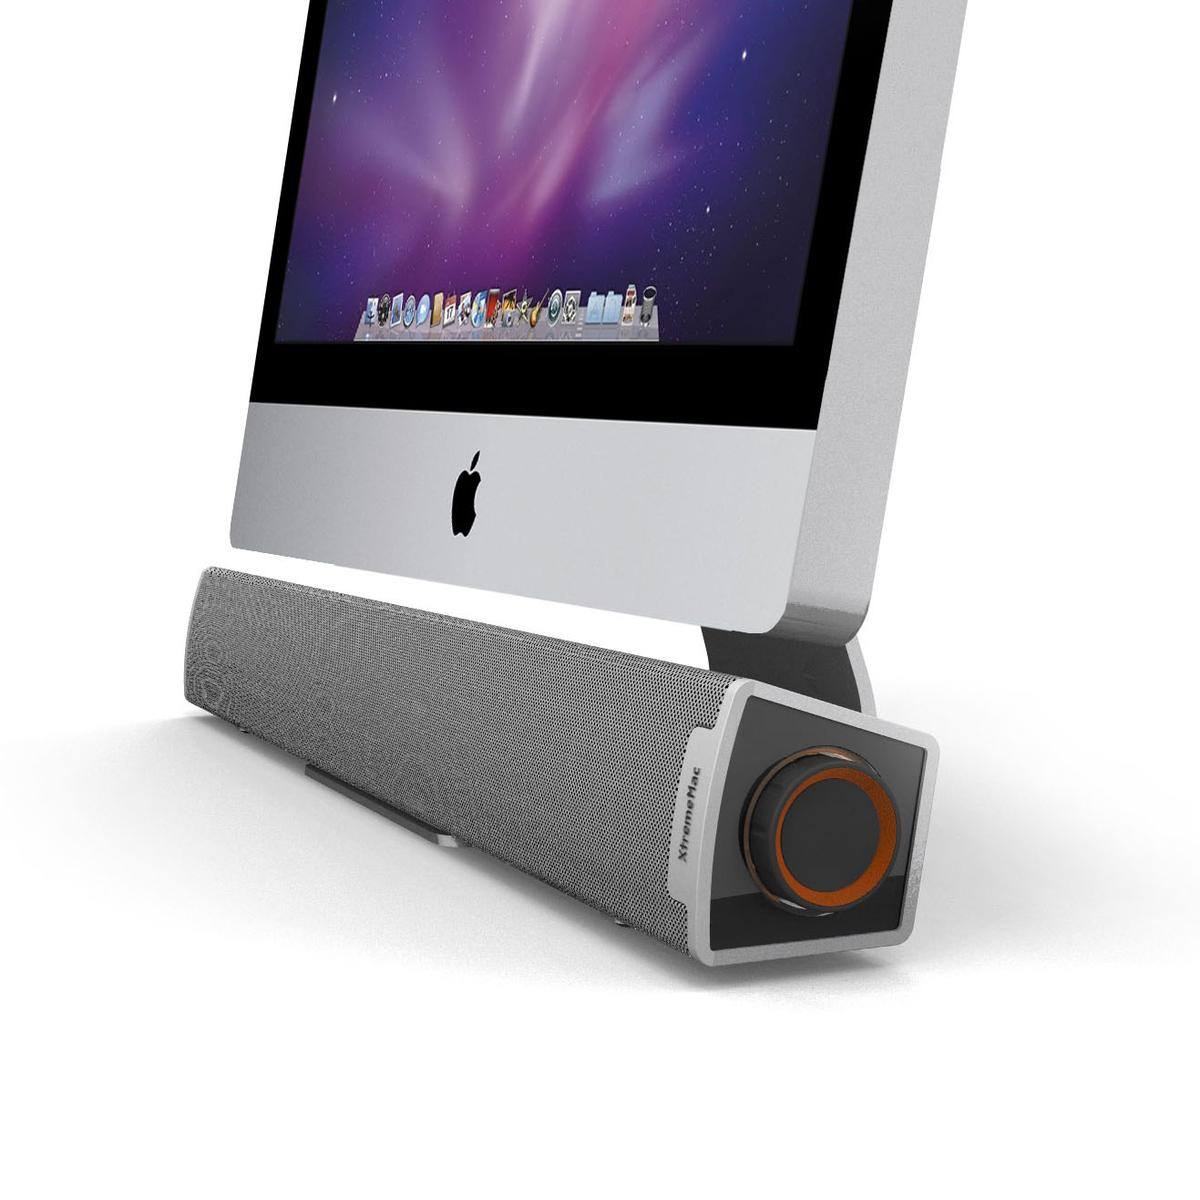 The Tango Bar is a new USB sound bar for Macs and PCs